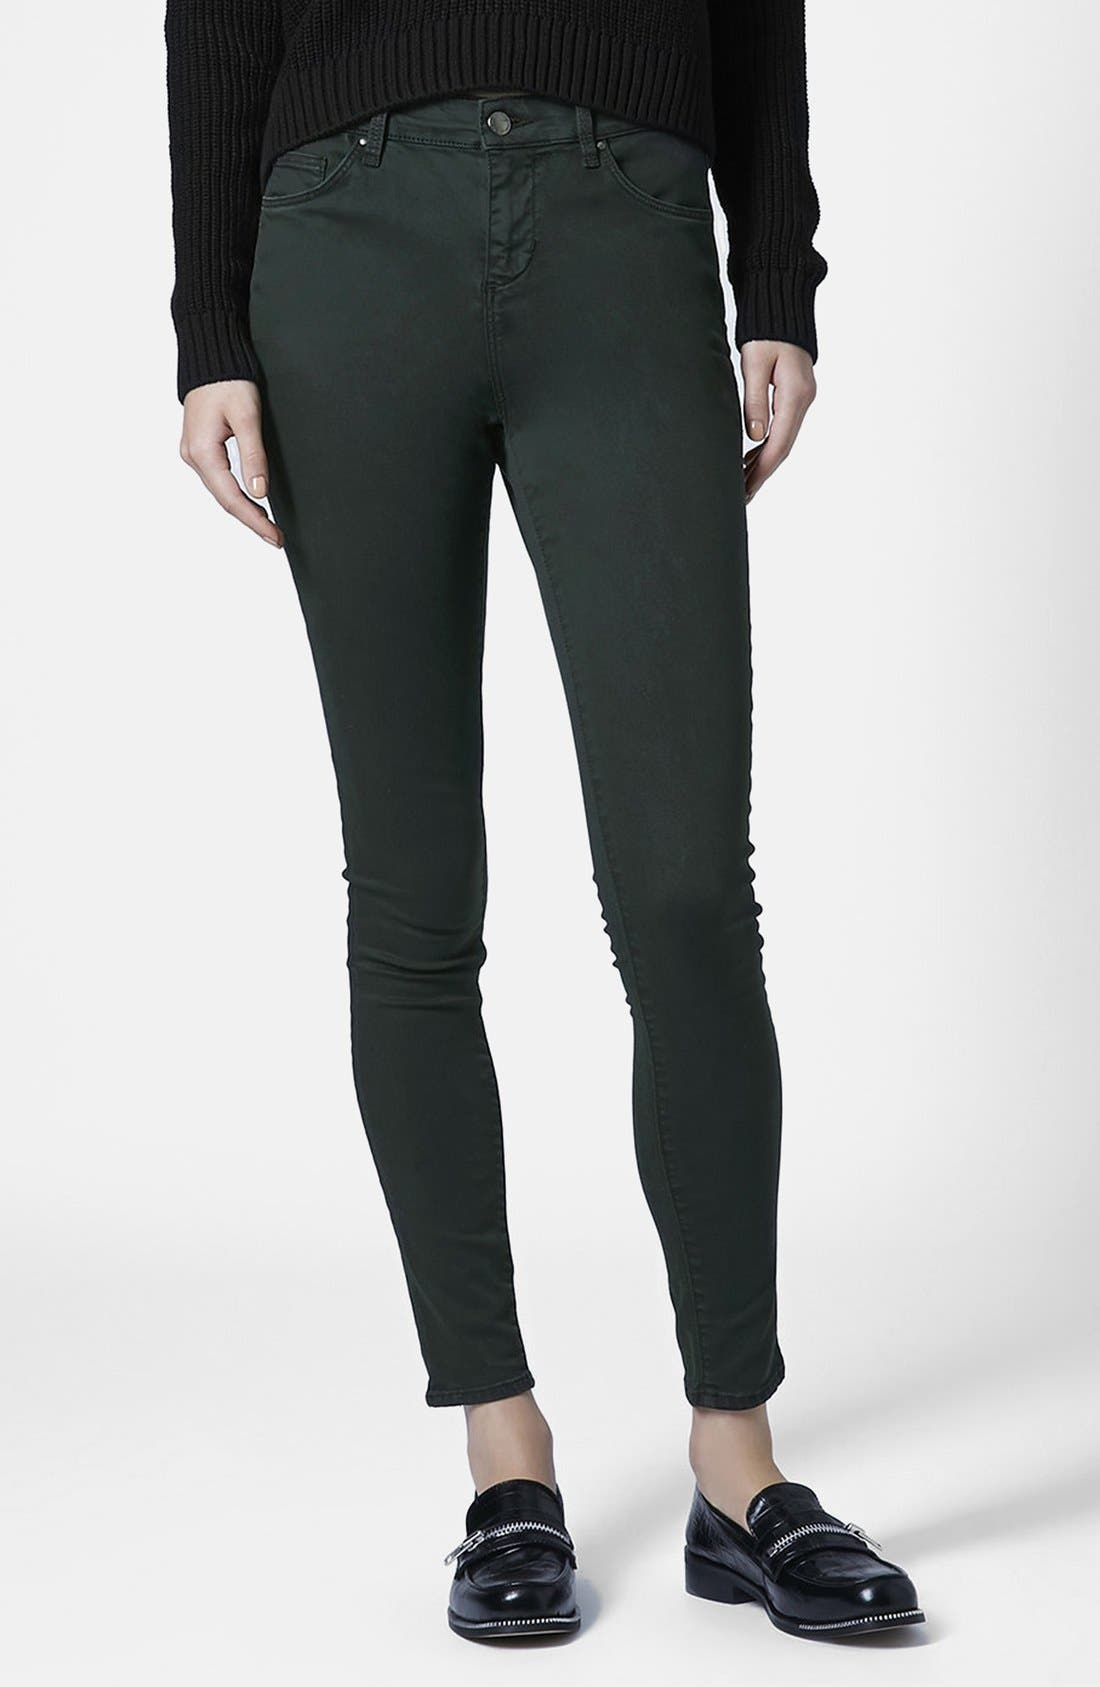 Main Image - Topshop Moto 'Leigh' Forest Jeans (Dark Green)